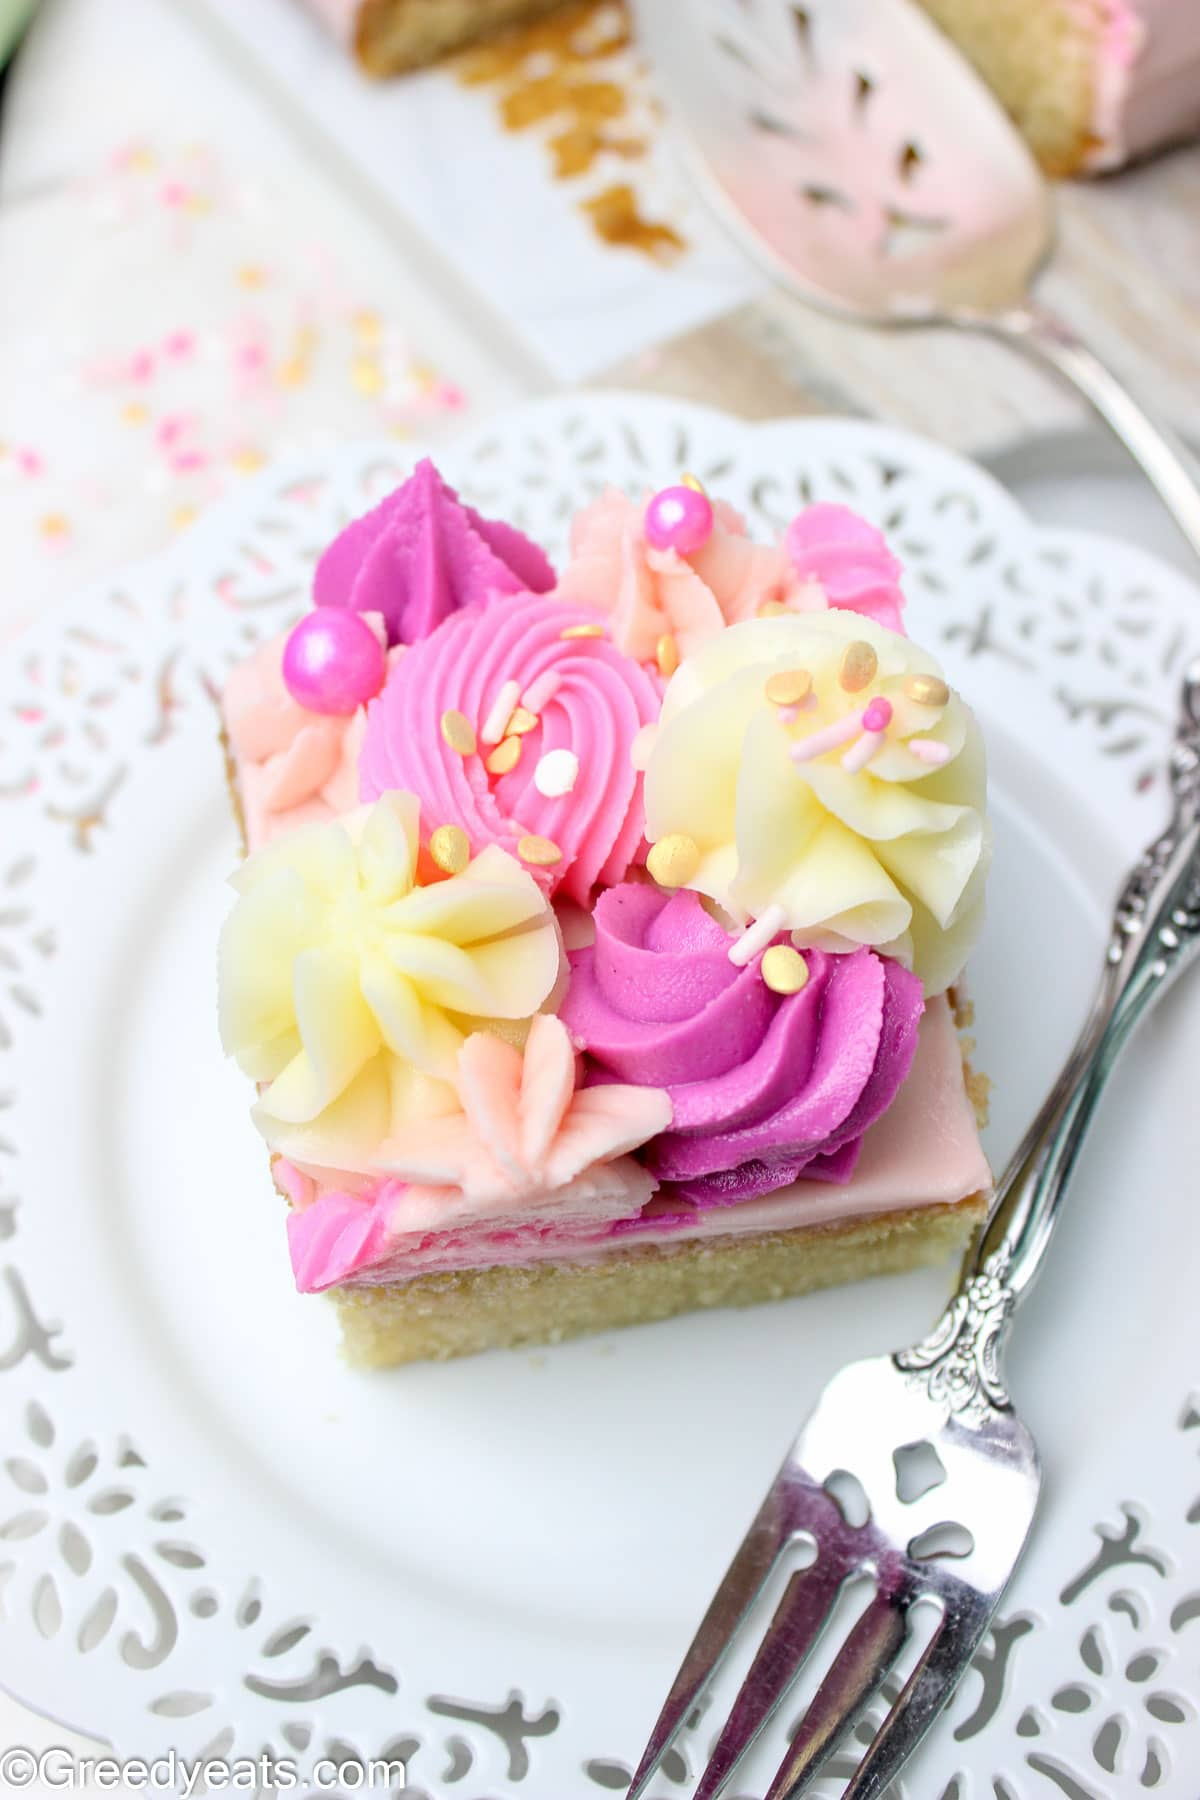 A slice of moist and easy Vanilla cake frosted with piped vanilla buttercream frosting.